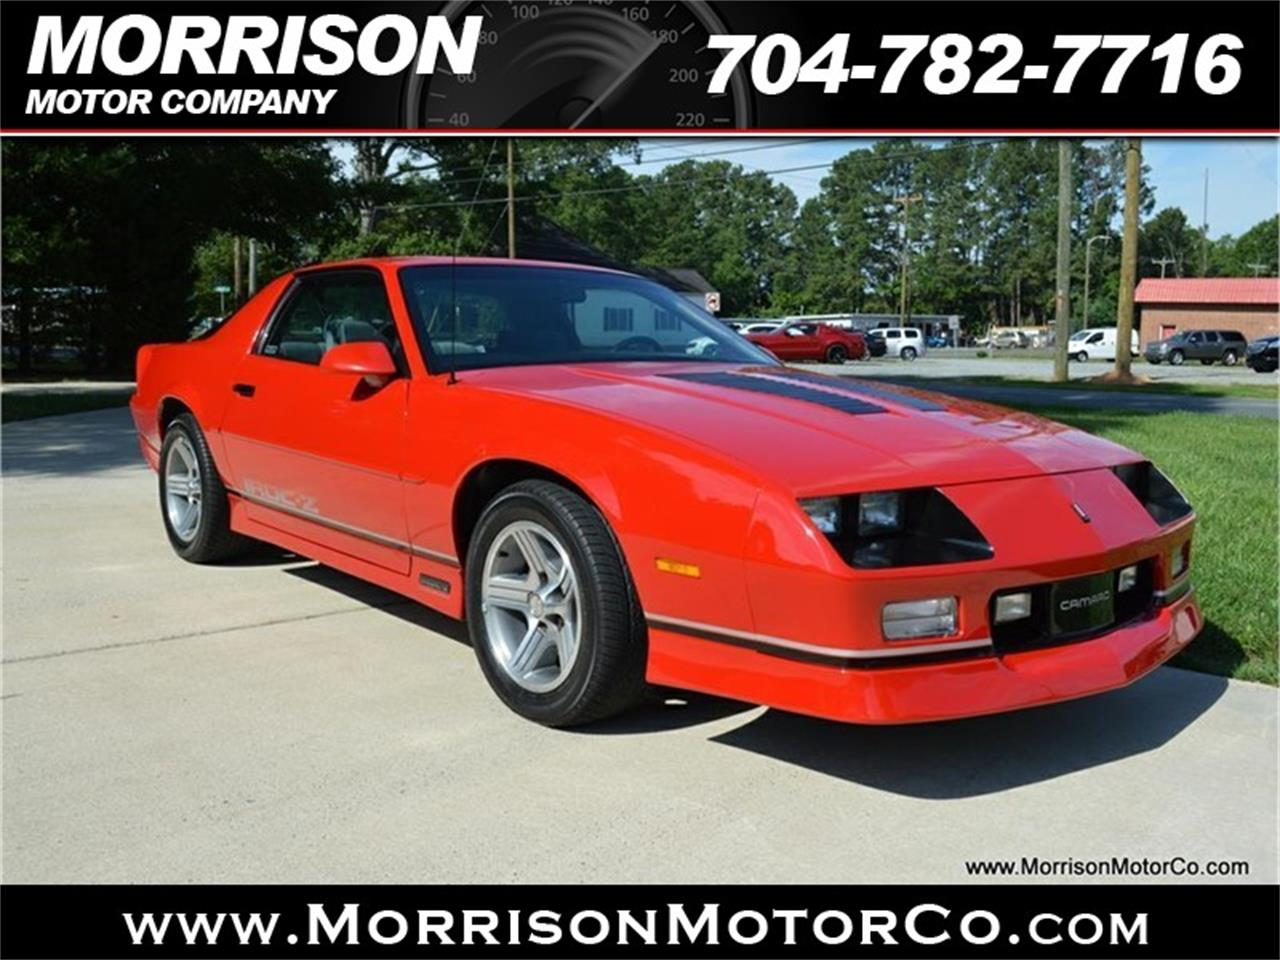 1990 chevrolet camaro iroc z for sale classiccars com cc 1234465 1990 chevrolet camaro iroc z for sale